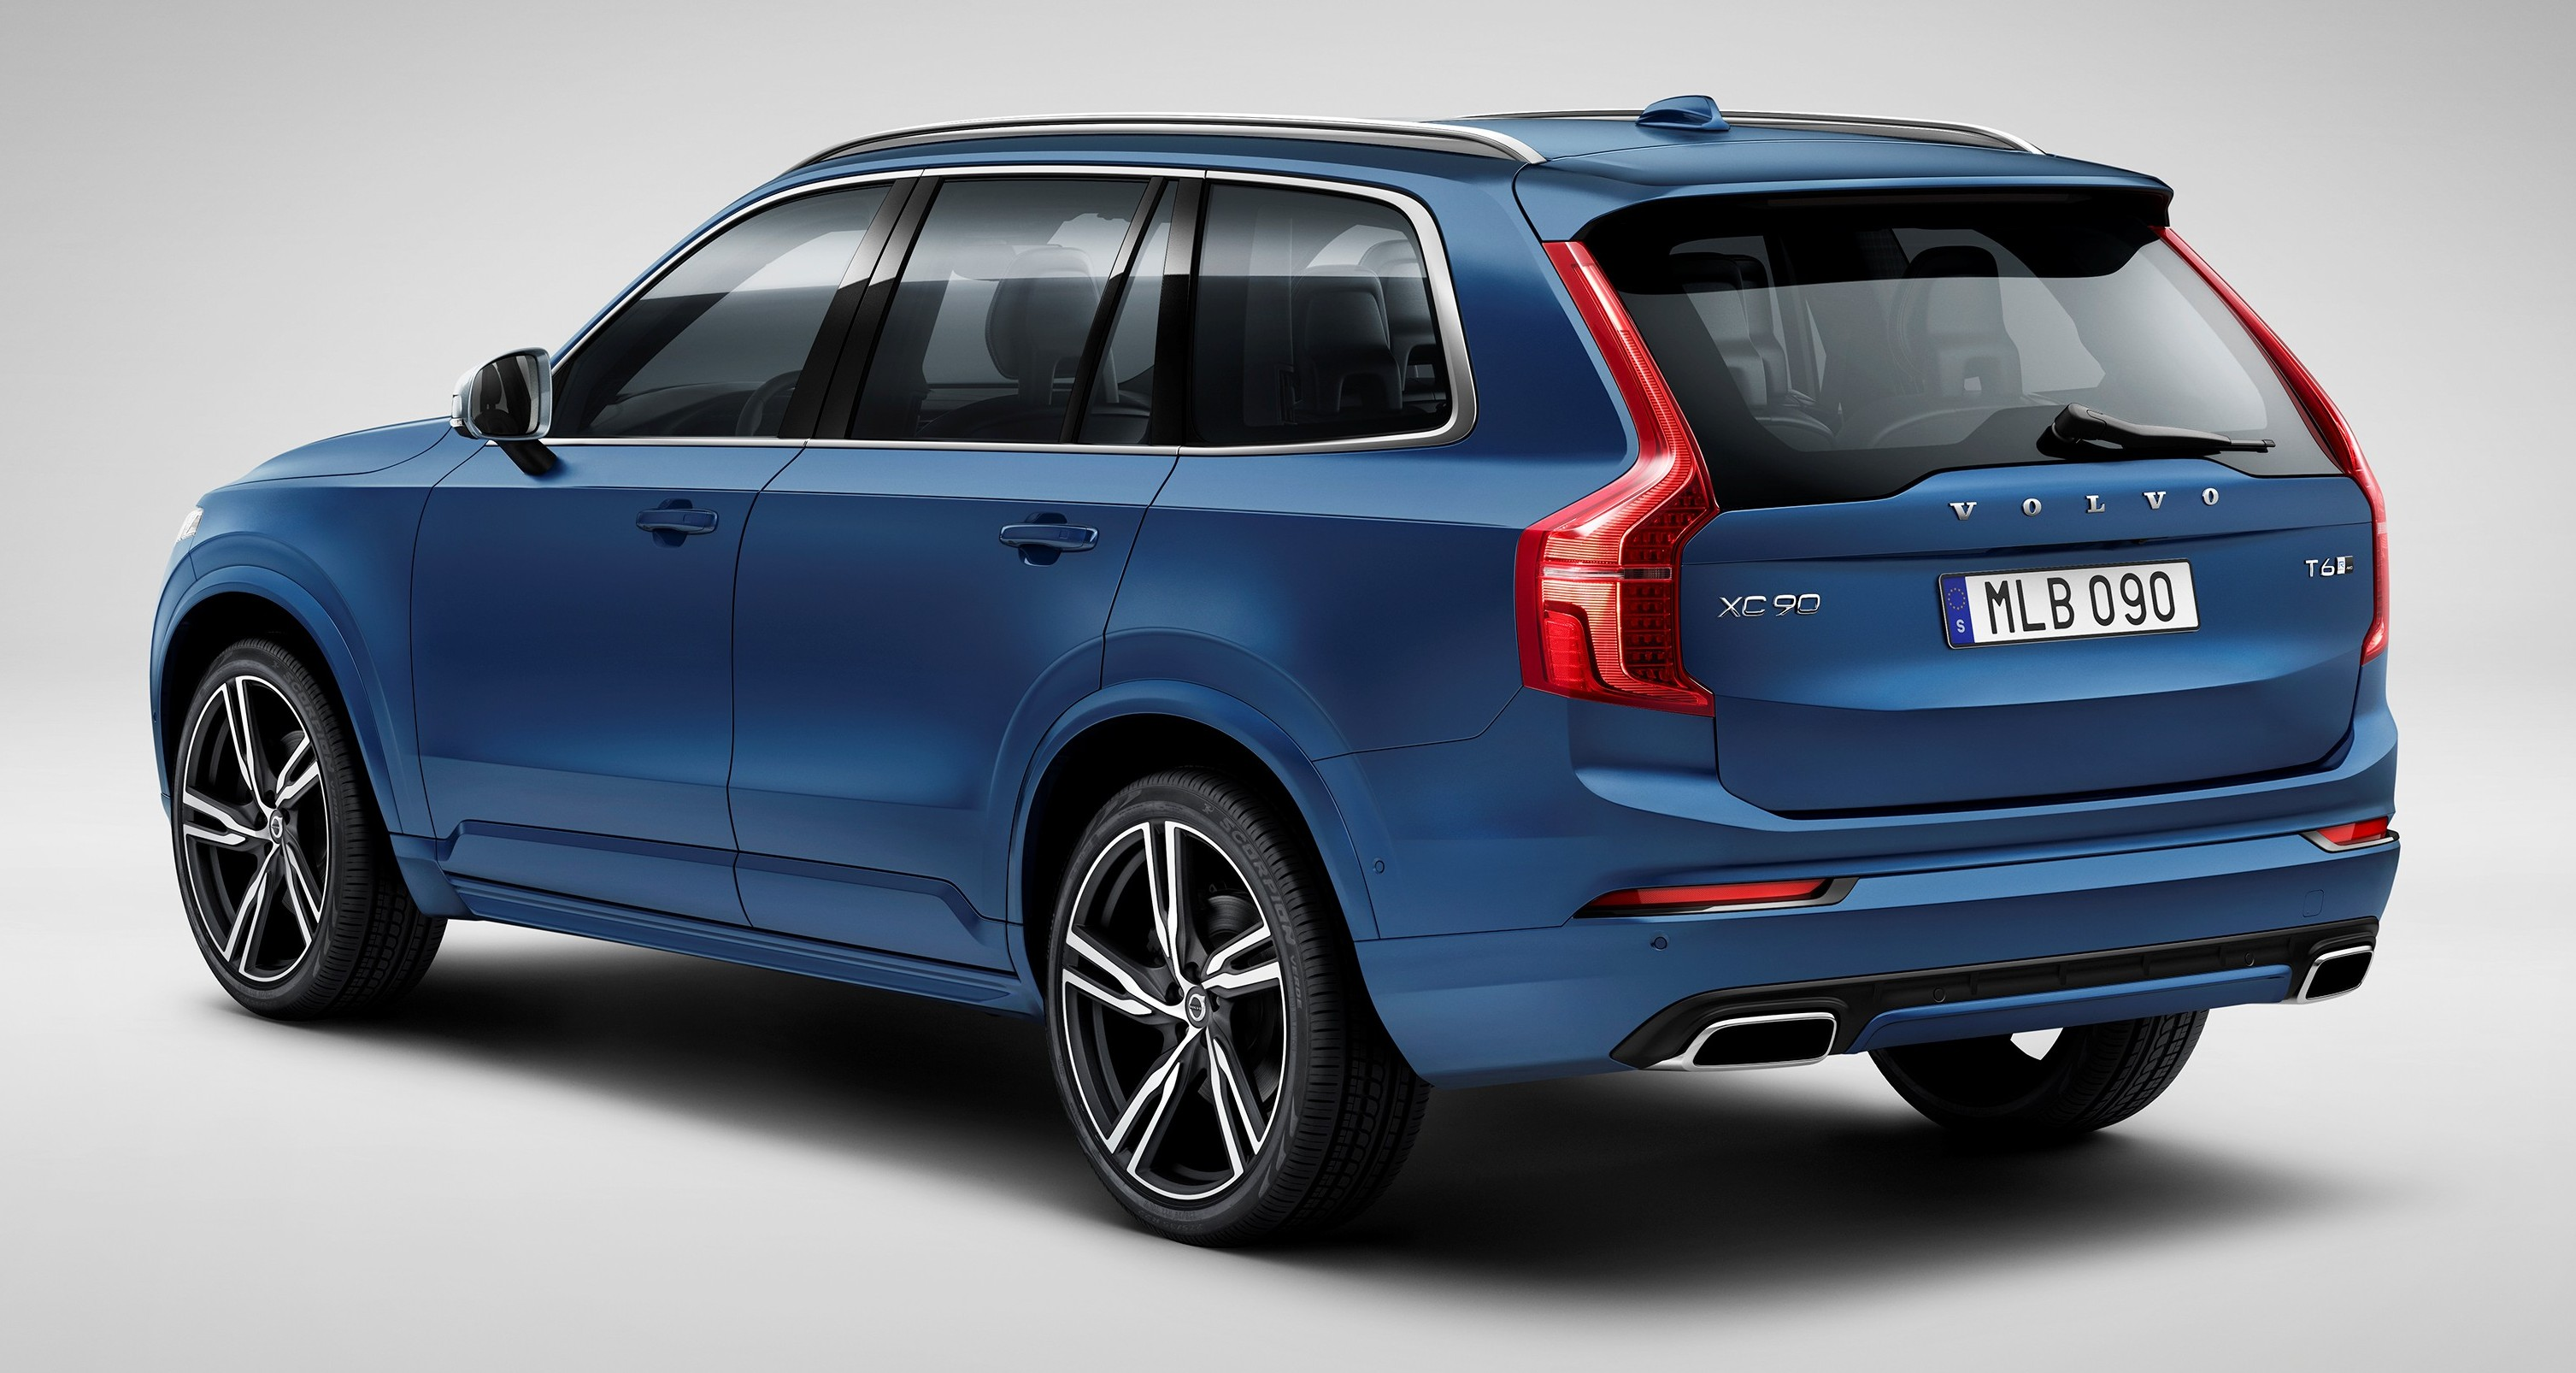 Volvo Xc90 R Design Cosmetic Upgrades For New Suv Image